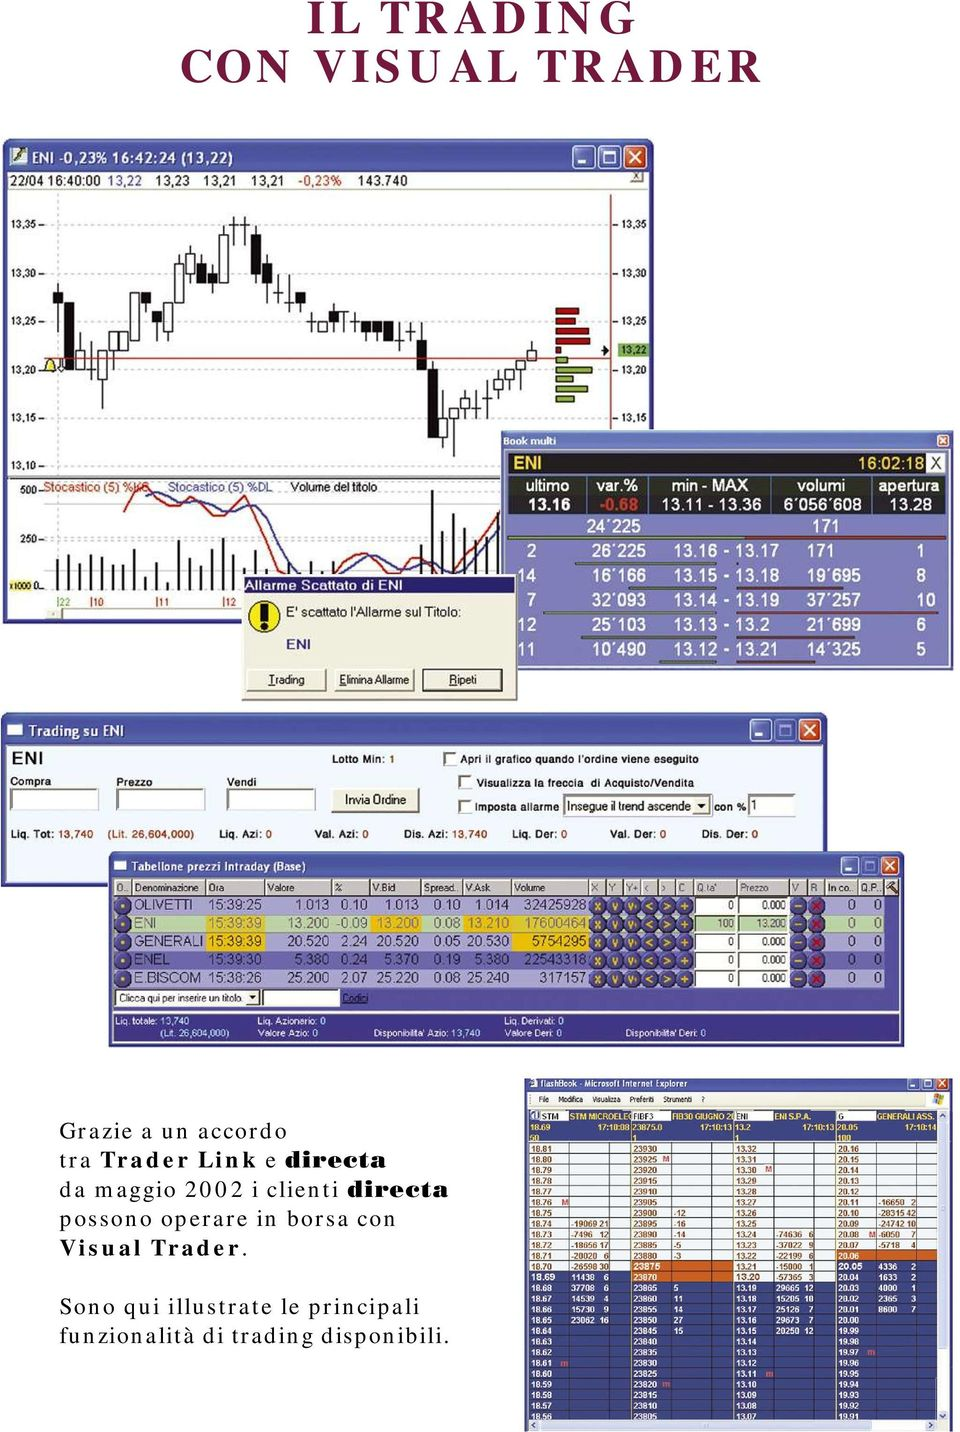 possono operare in borsa con Visual Trader.